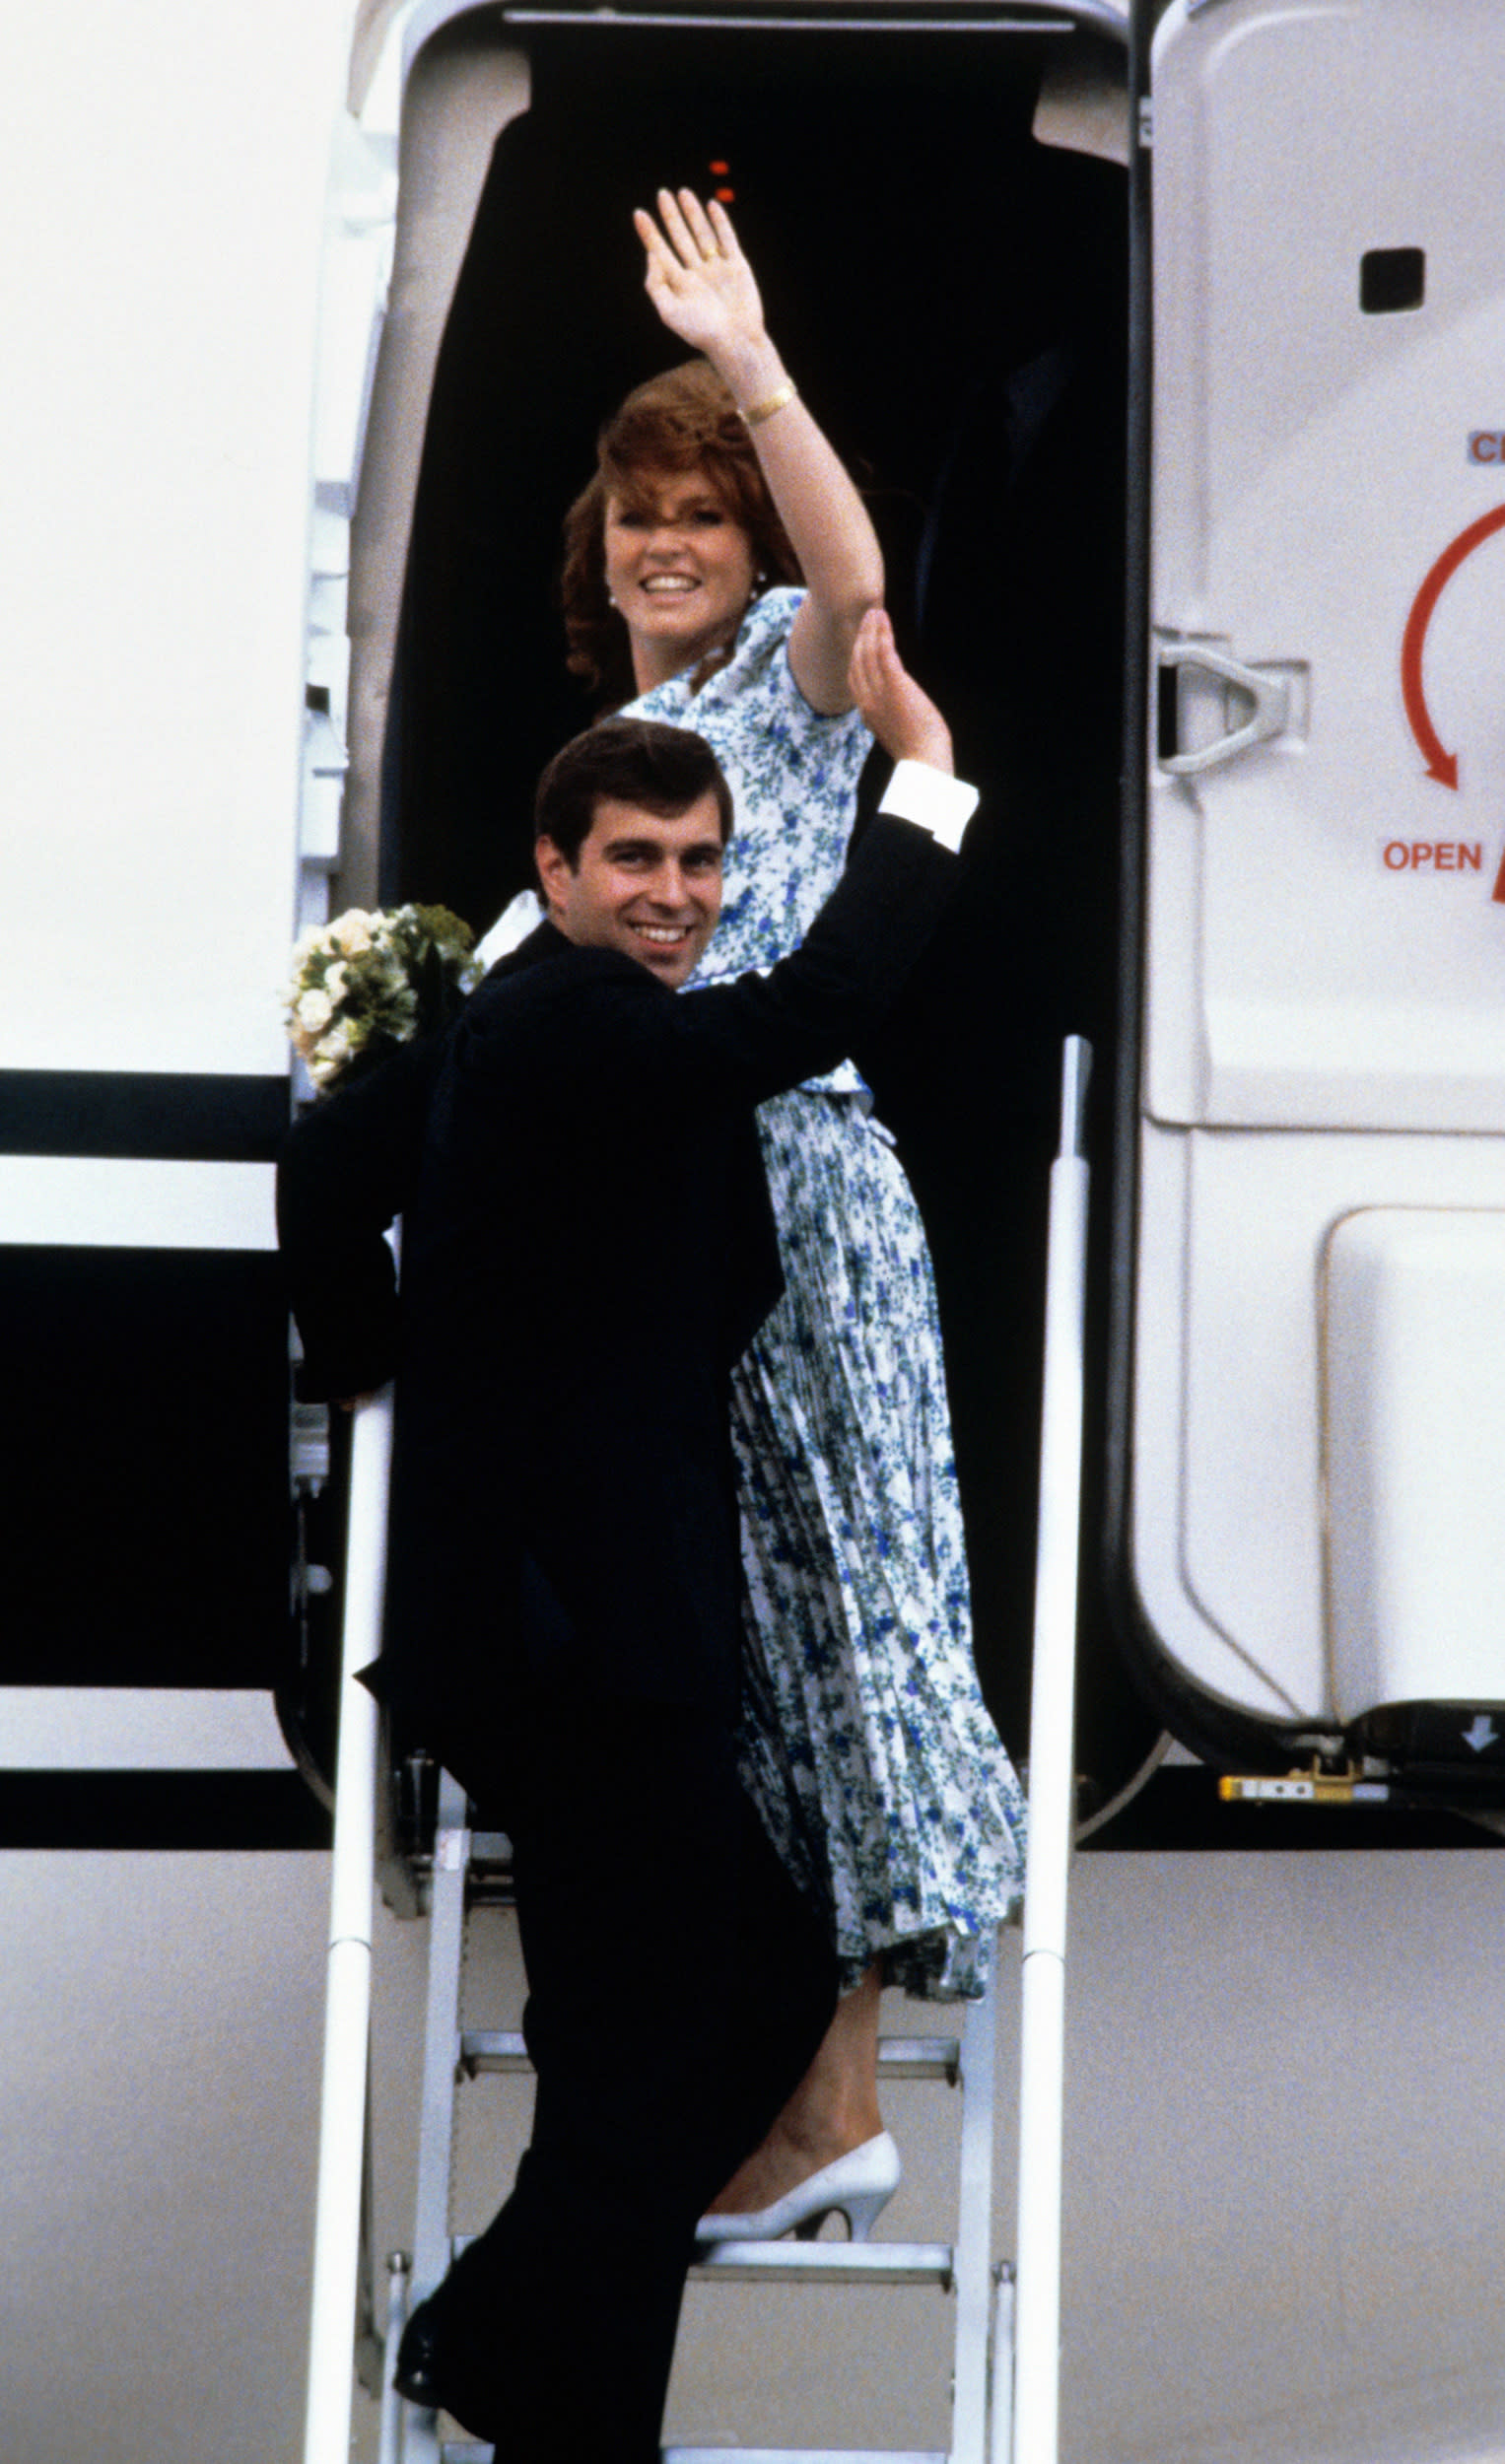 The newly-wed Duke and Duchess of York wave as they board the jet at Heathrow Airport, London, carrying them to the Azores for their honeymoon.